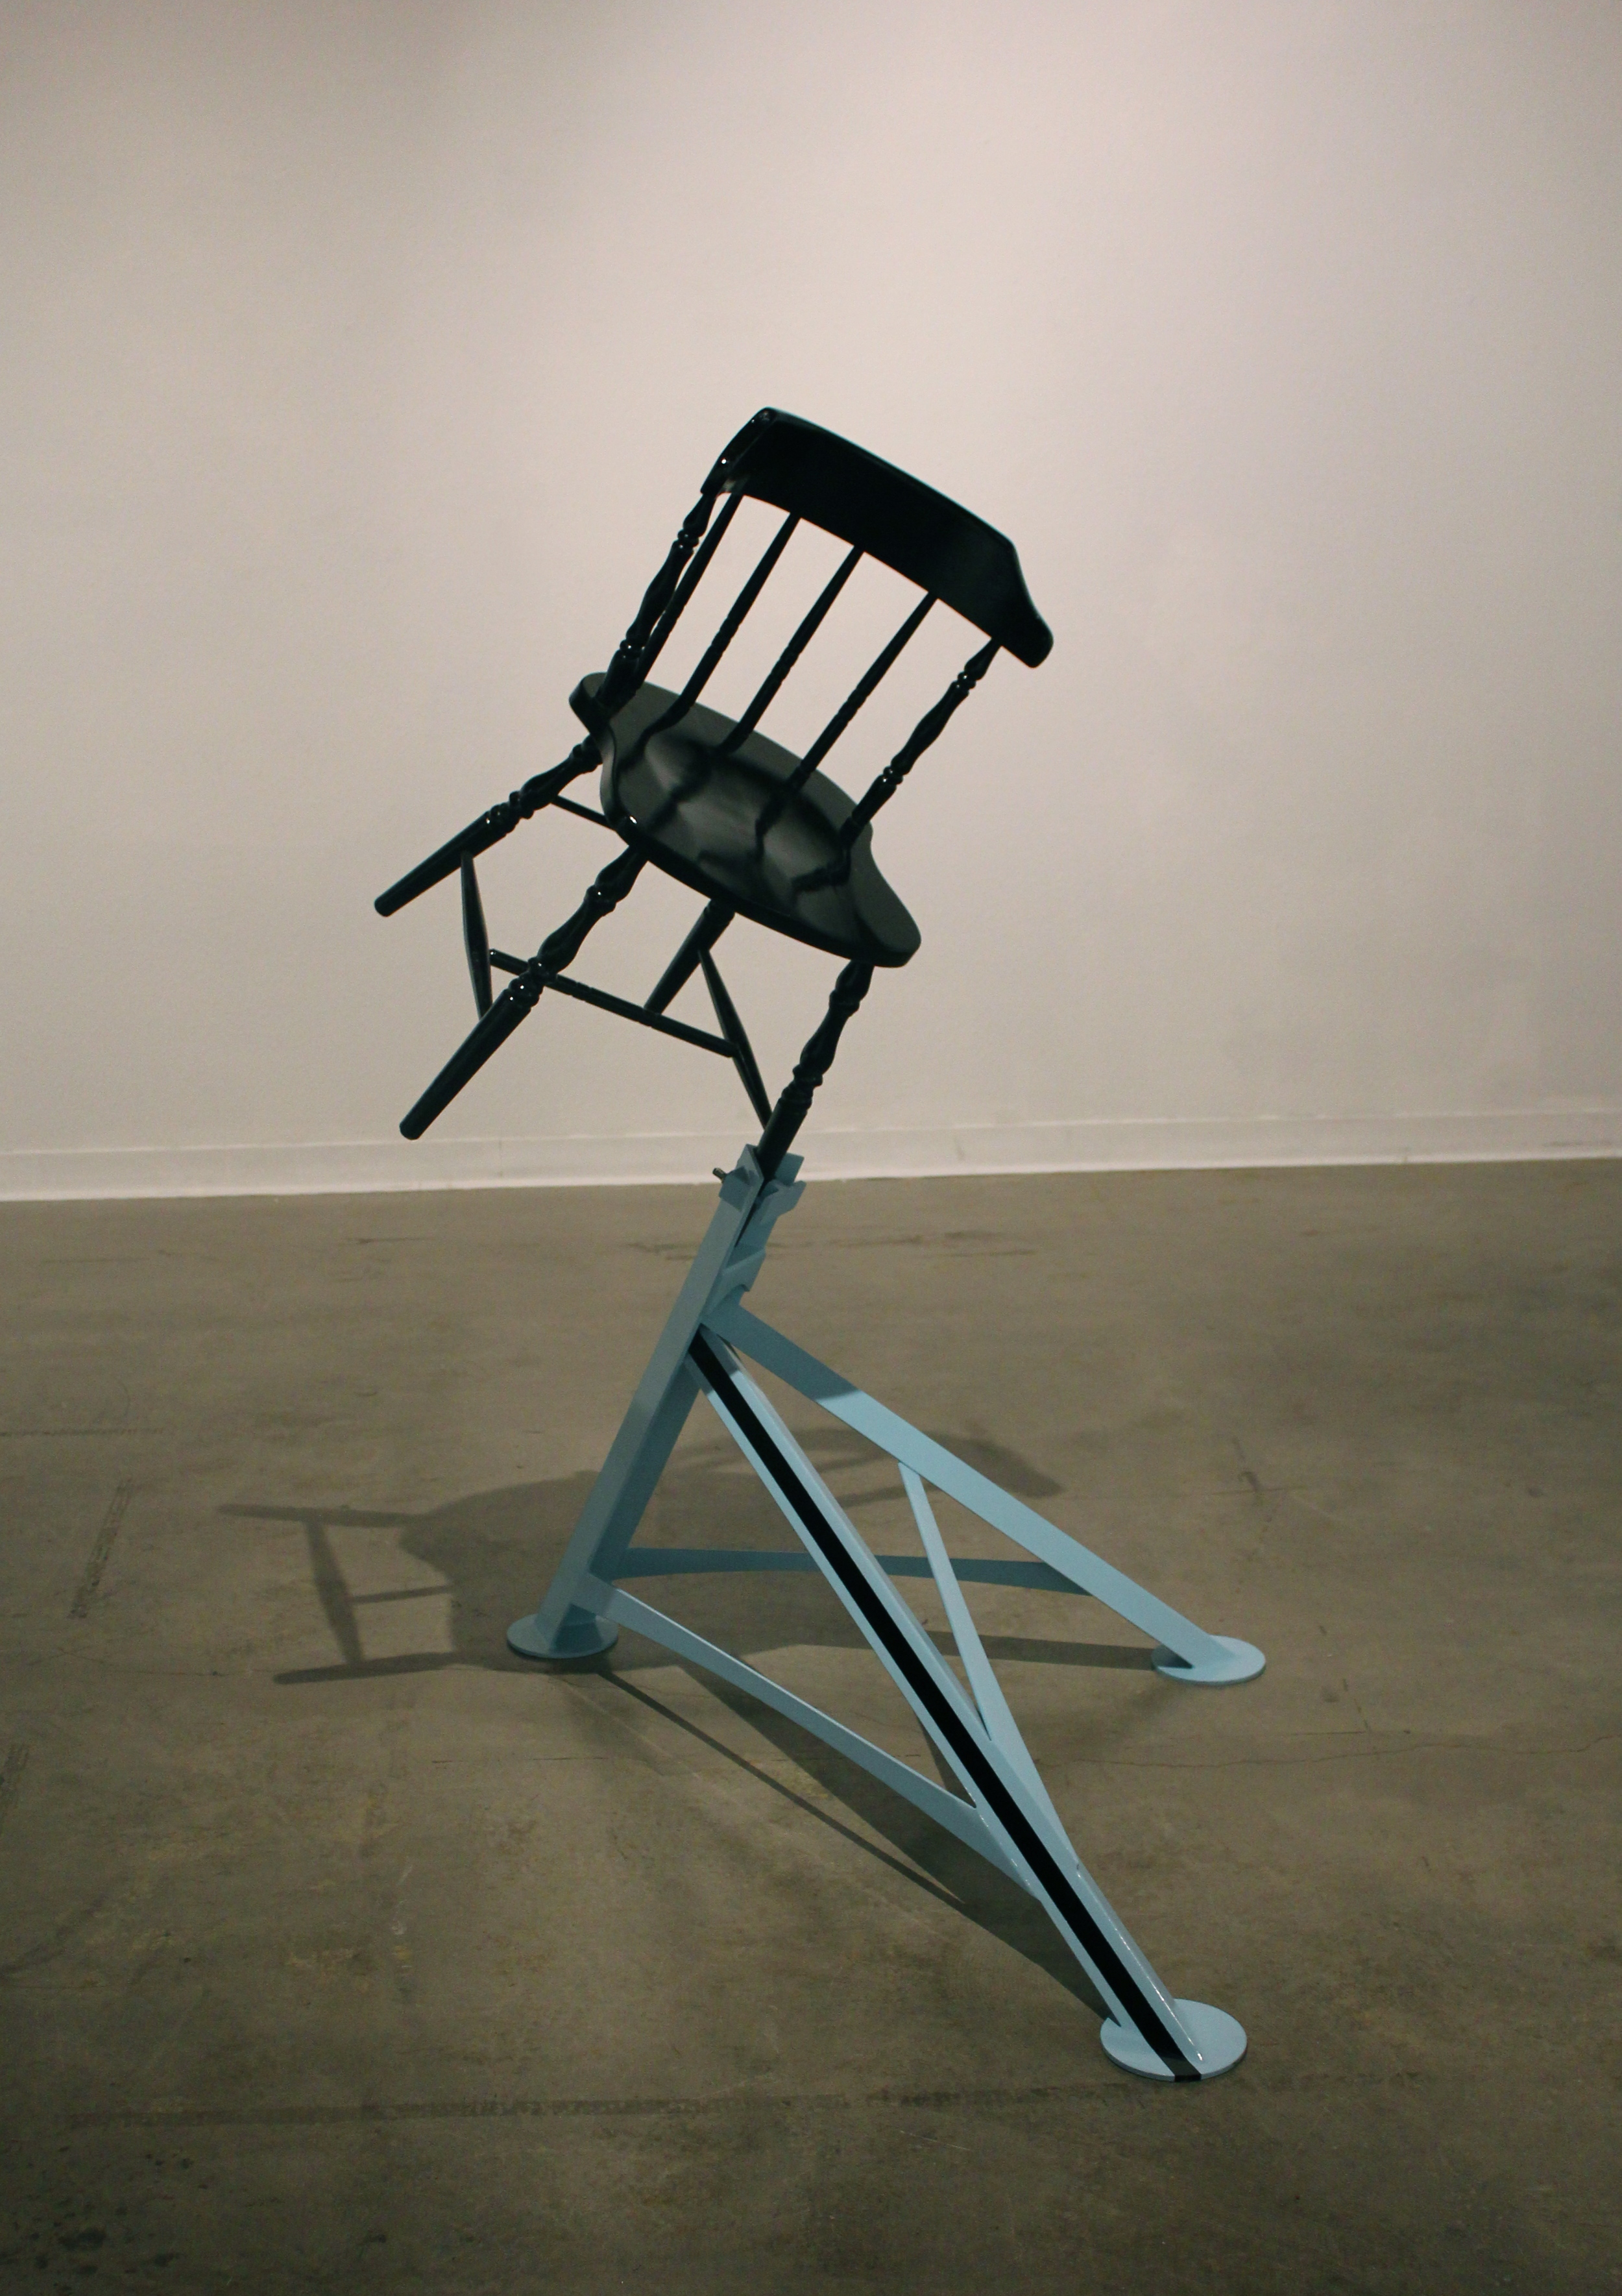 Chair. 2011. Welded and painted Steel, hardware, found chair.